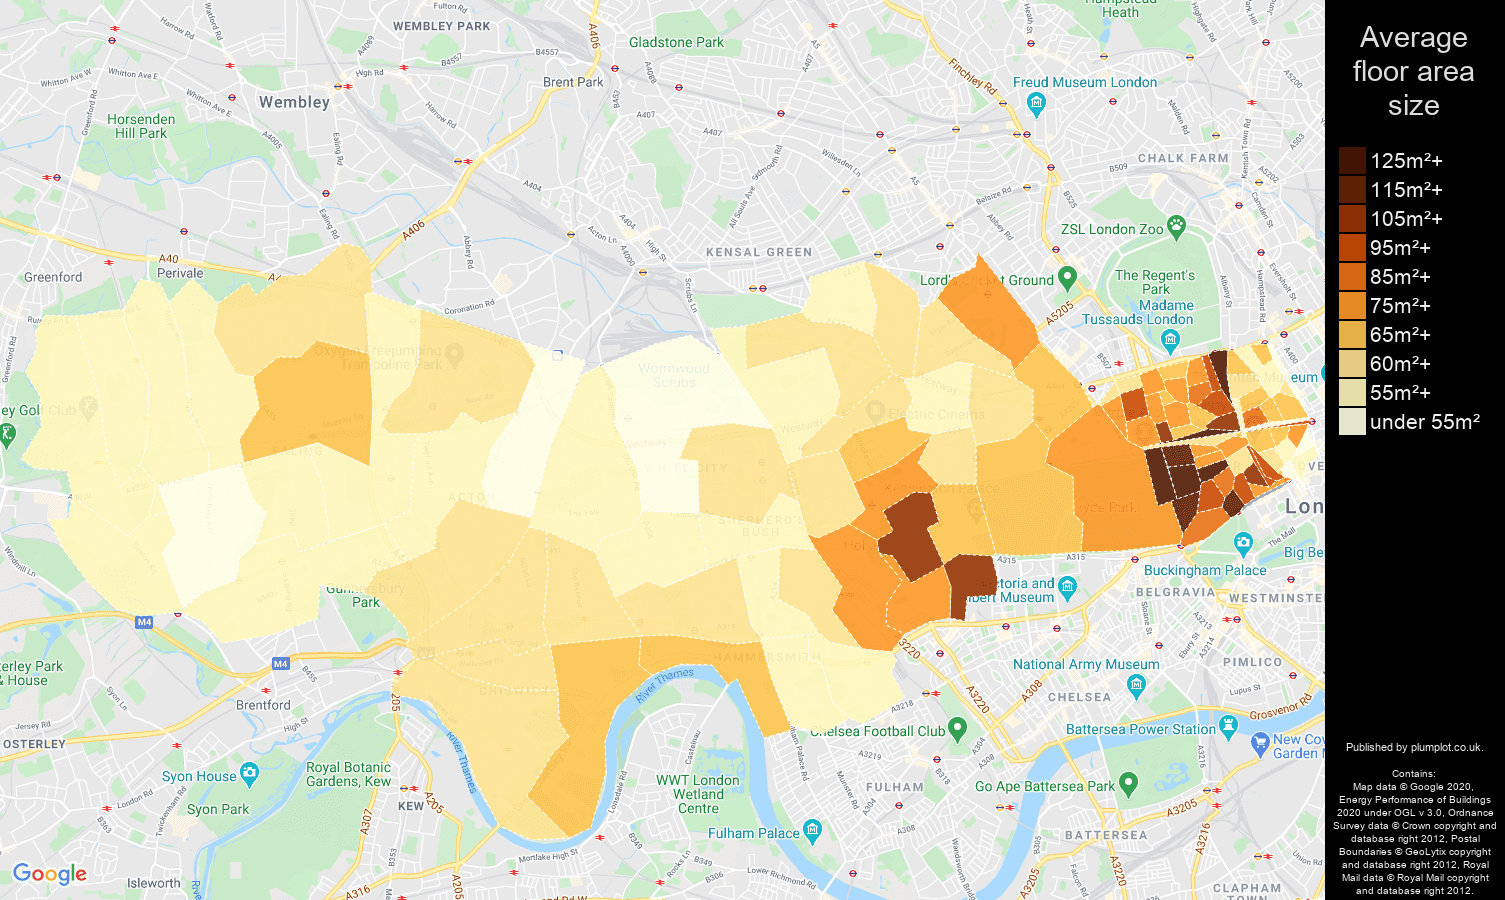 West London map of average floor area size of flats